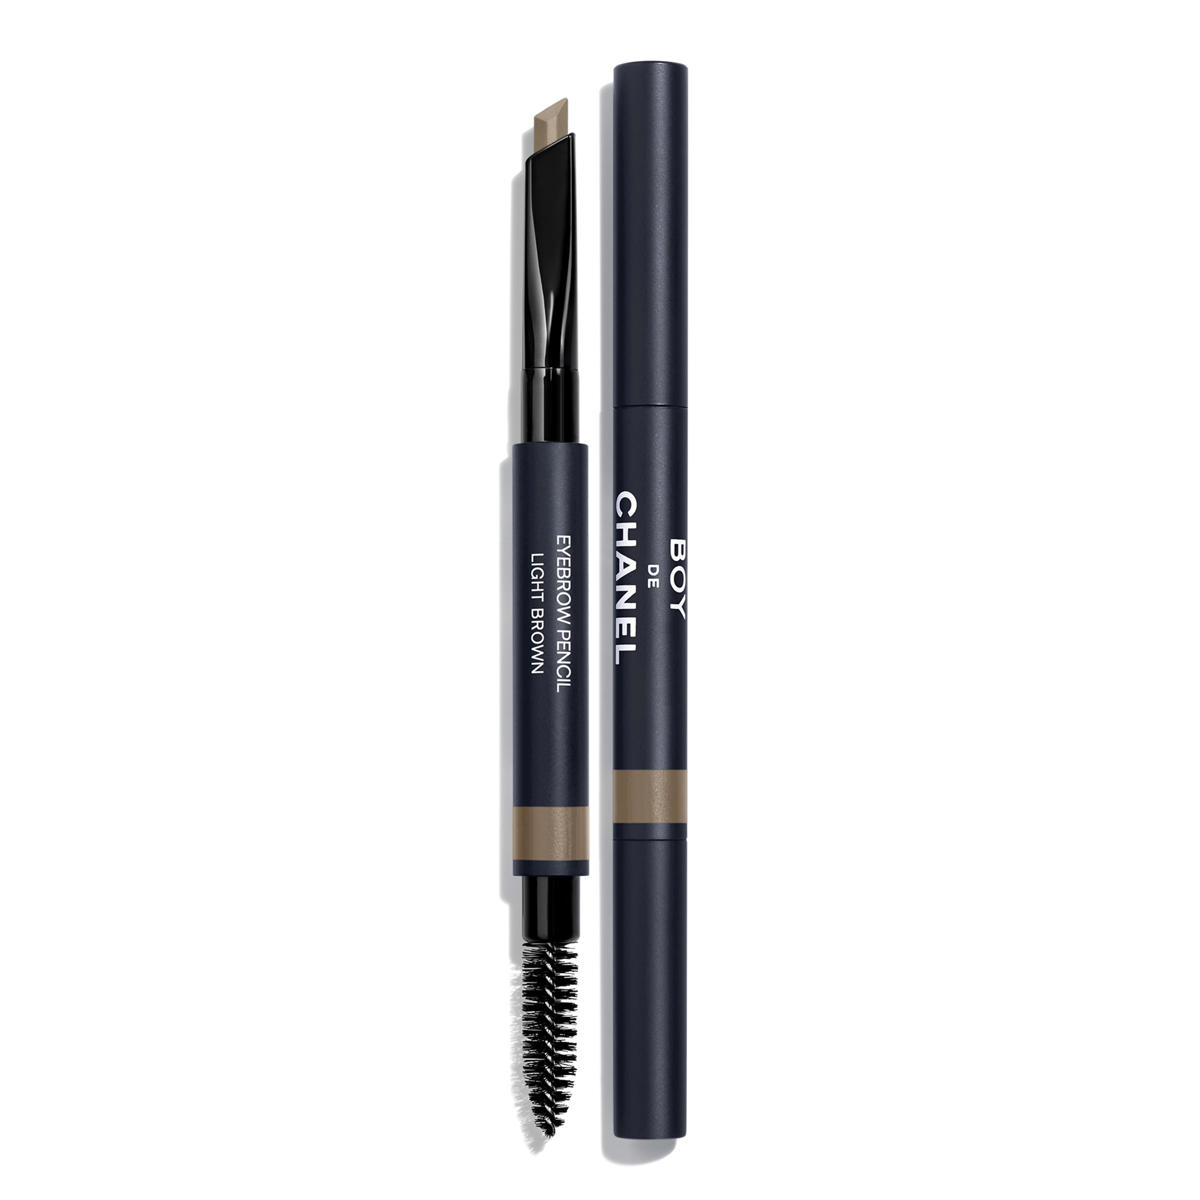 Boy De Chanel Eyebrow Pencil Light Brown 202